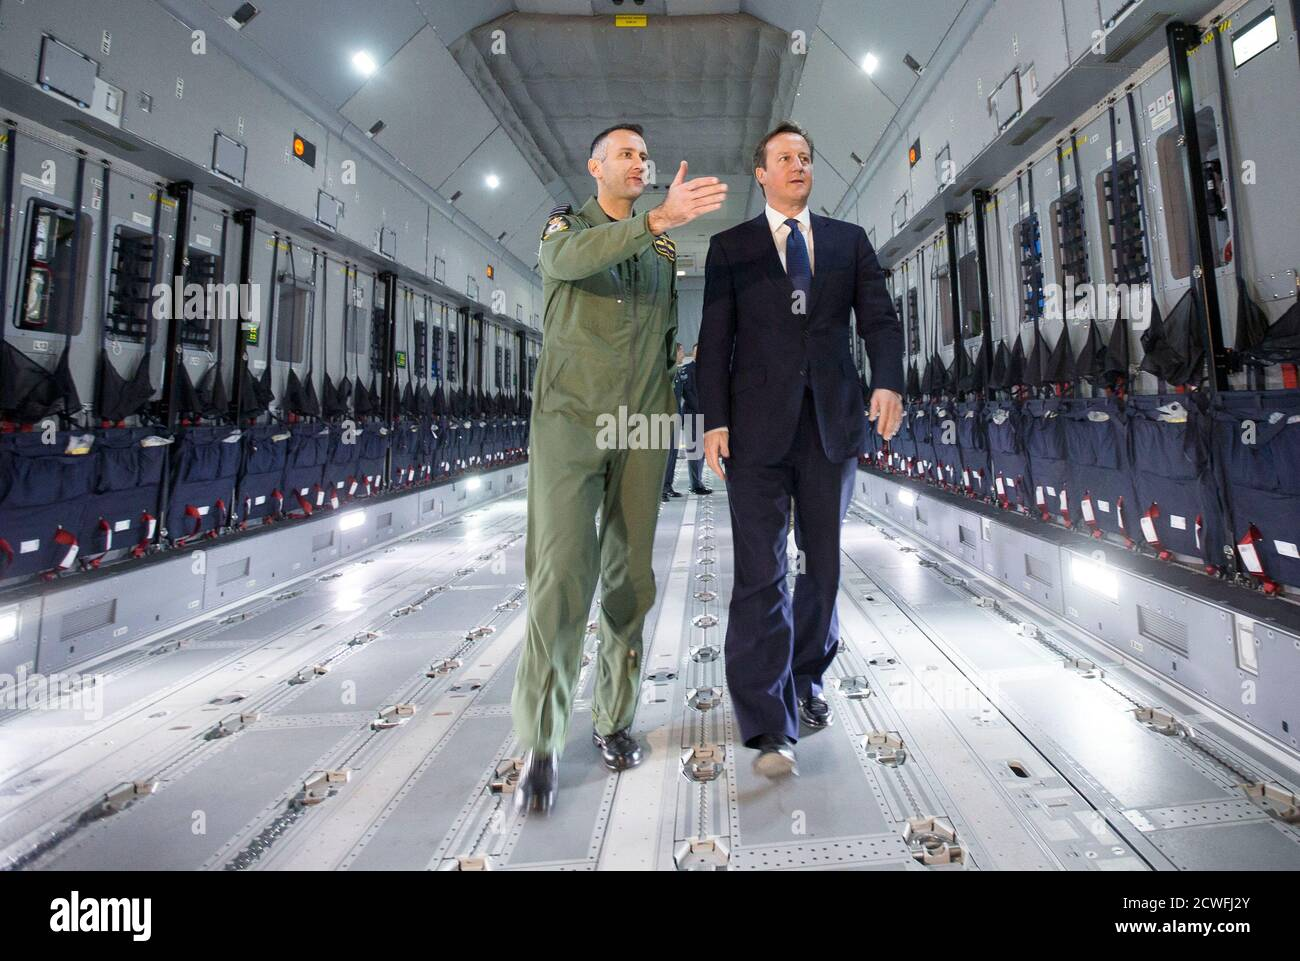 Britain's Prime Minister David Cameron views a newly delivered A400M Atlas aircraft with wing commander Simon Boyle at RAF Brize Norton, central England, November 27, 2014. The RAF will take delivery of 22 of the A400M aircraft. REUTERS/Peter Nicholls (BRITAIN - Tags: POLITICS MILITARY) Stock Photo